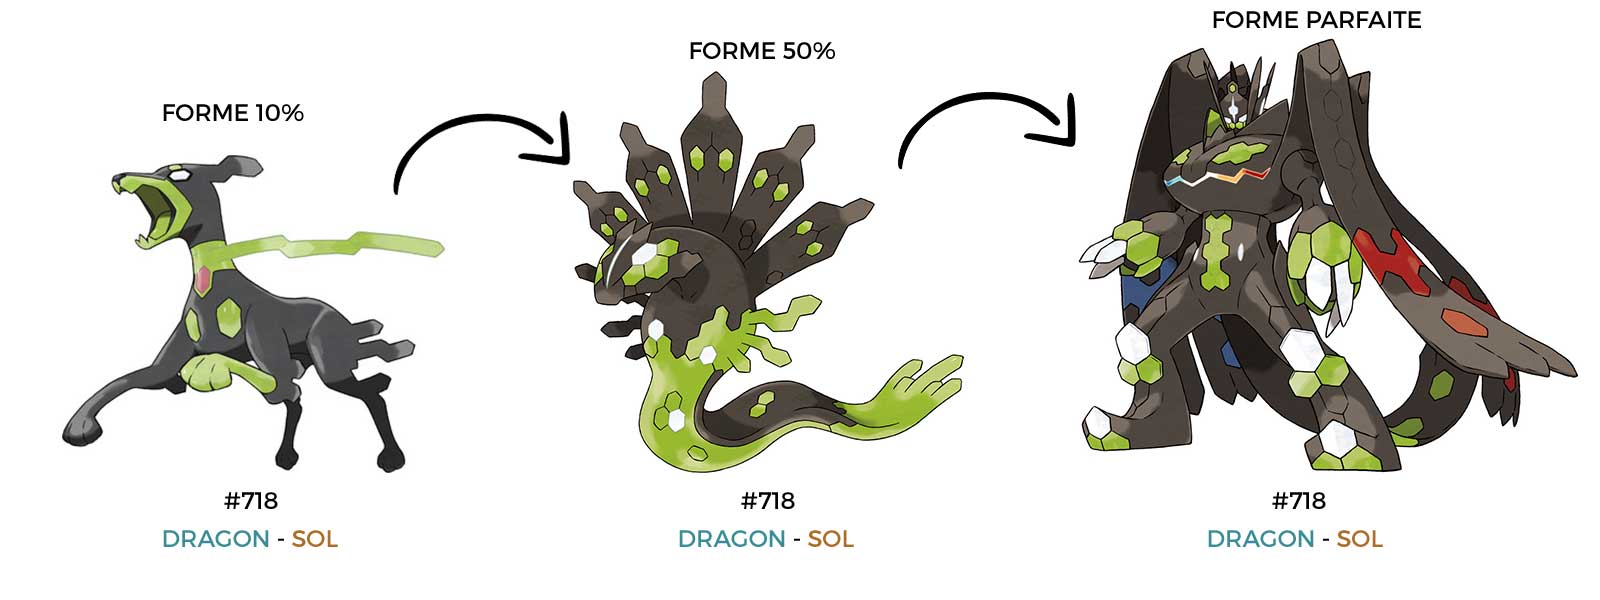 Zygarde type dragon